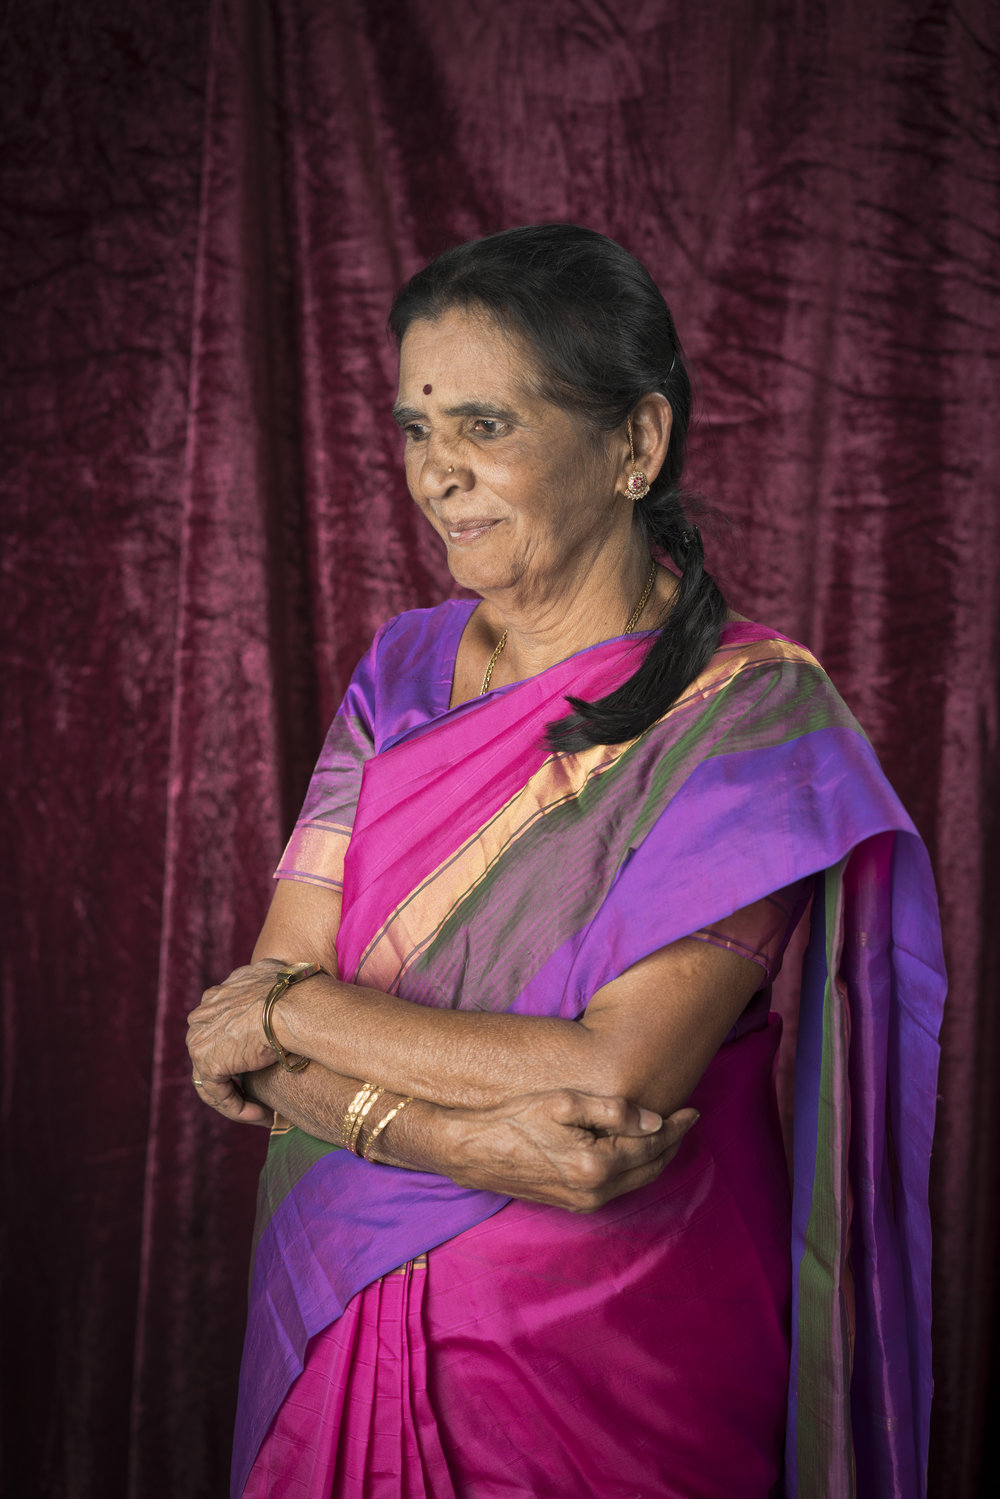 Like her peers she misses the camaraderie the women shared. Festivals were particularly memorable, where they'd dress up in colourful silks and look forward to a day of socialising amidst work.